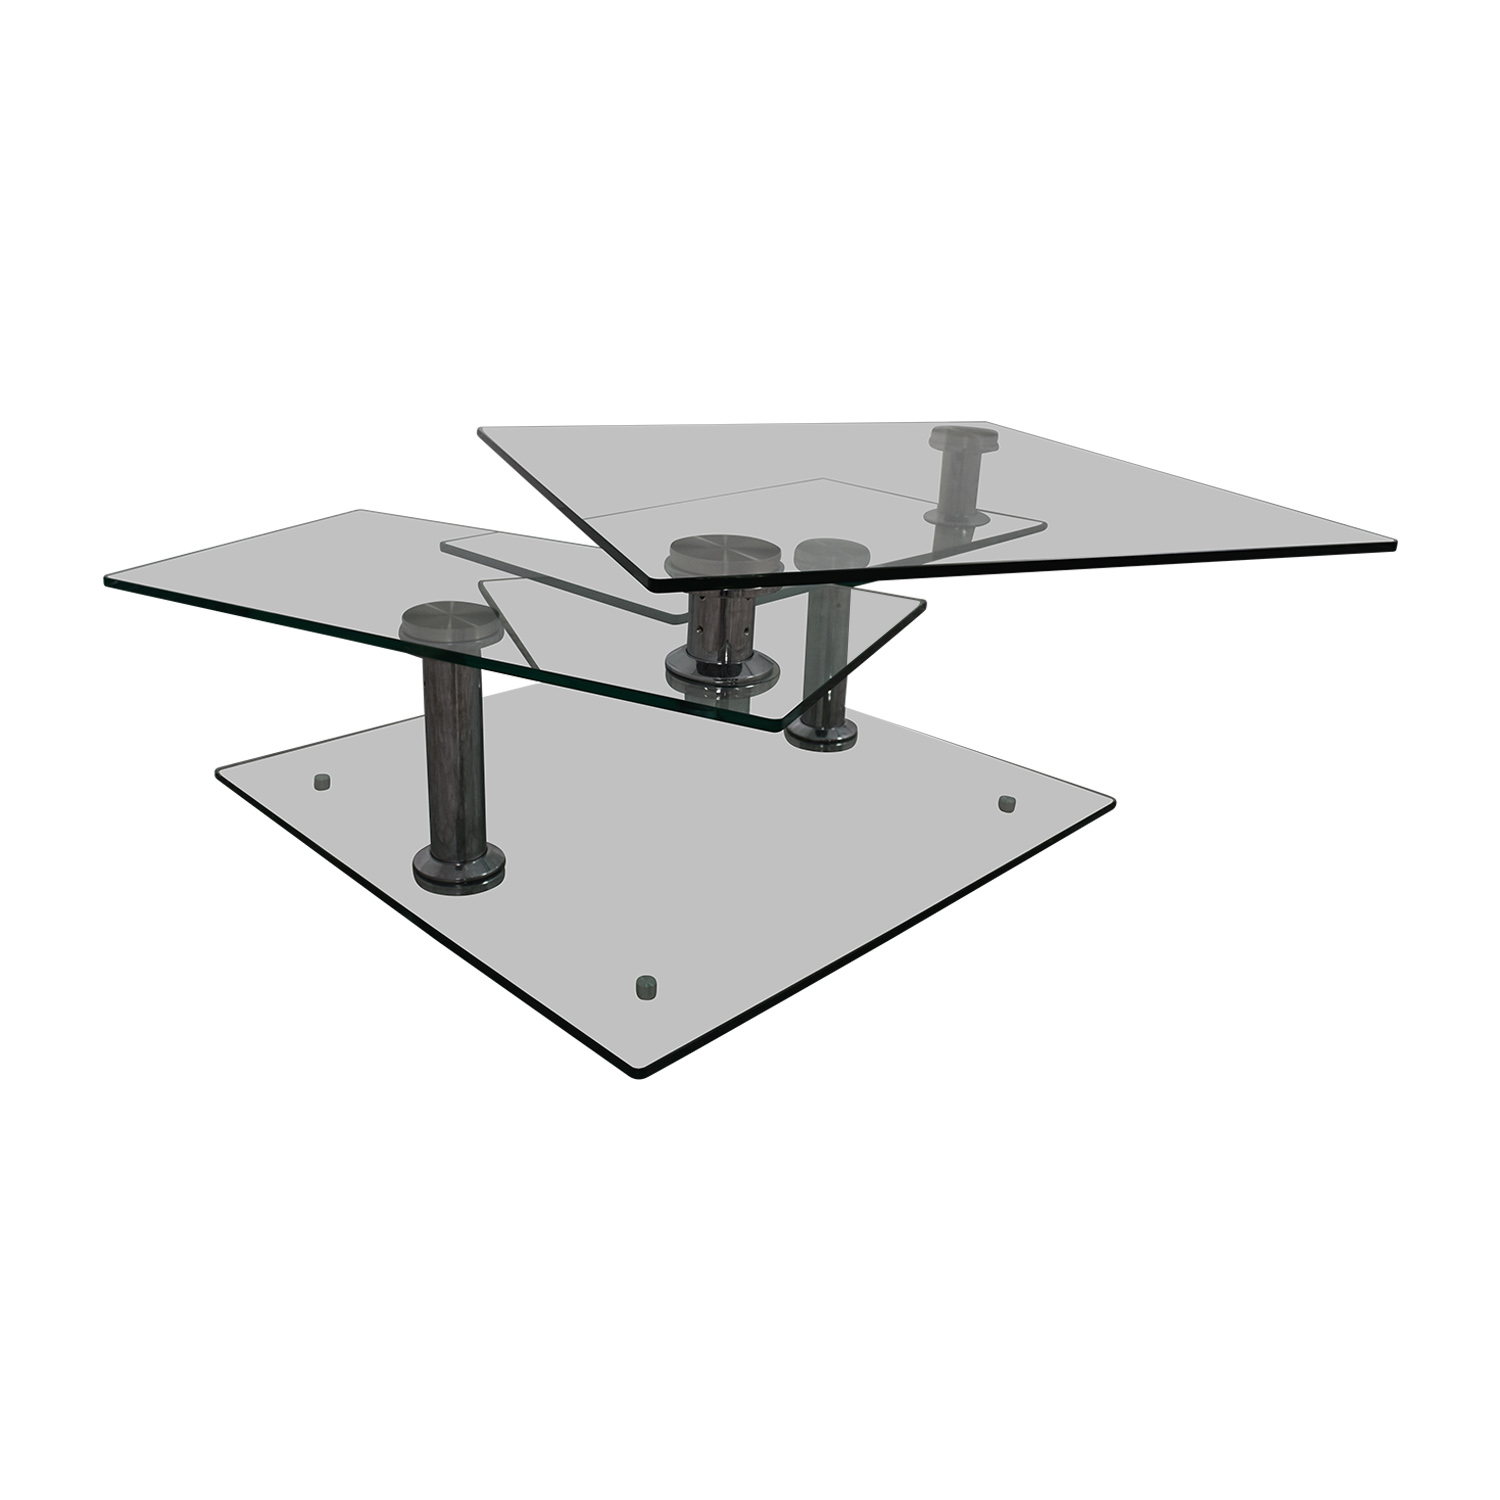 47% OFF Z Gallerie Z Gallerie Movable Glass Coffee Table Tables